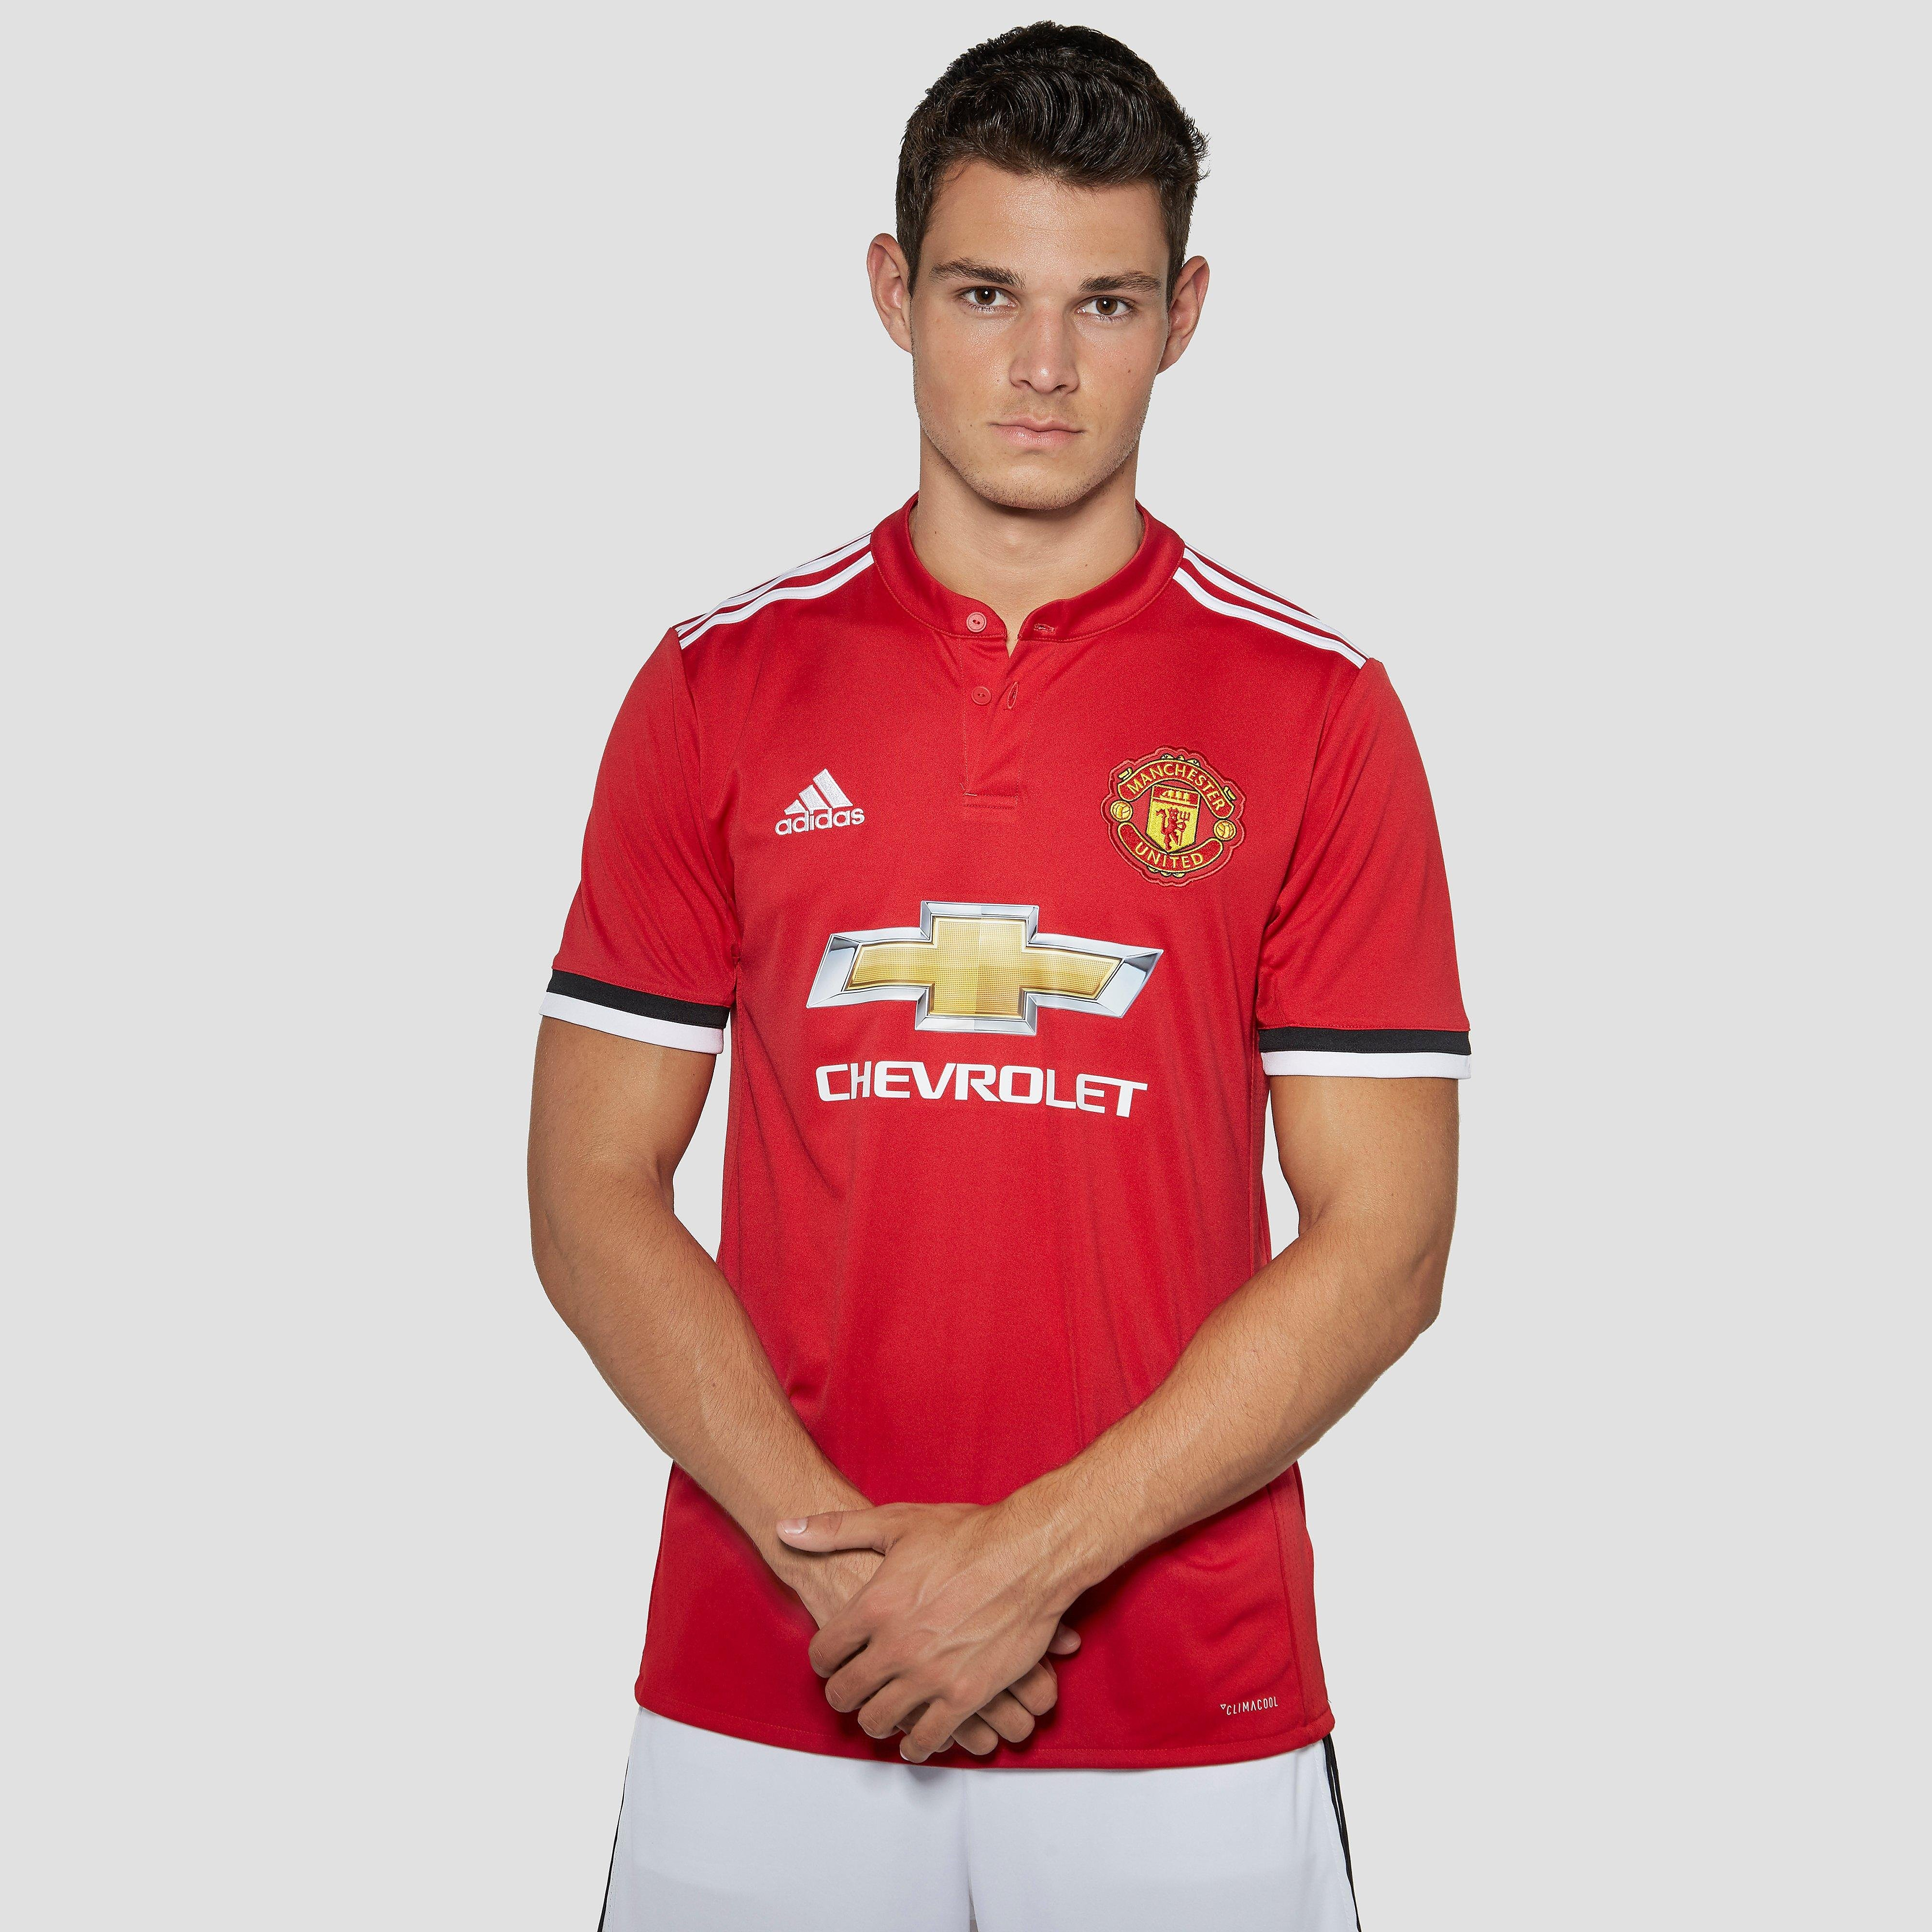 ADIDAS MANCHESTER UNITED FC THUISSHIRT 17/18 ROOD/WIT HEREN